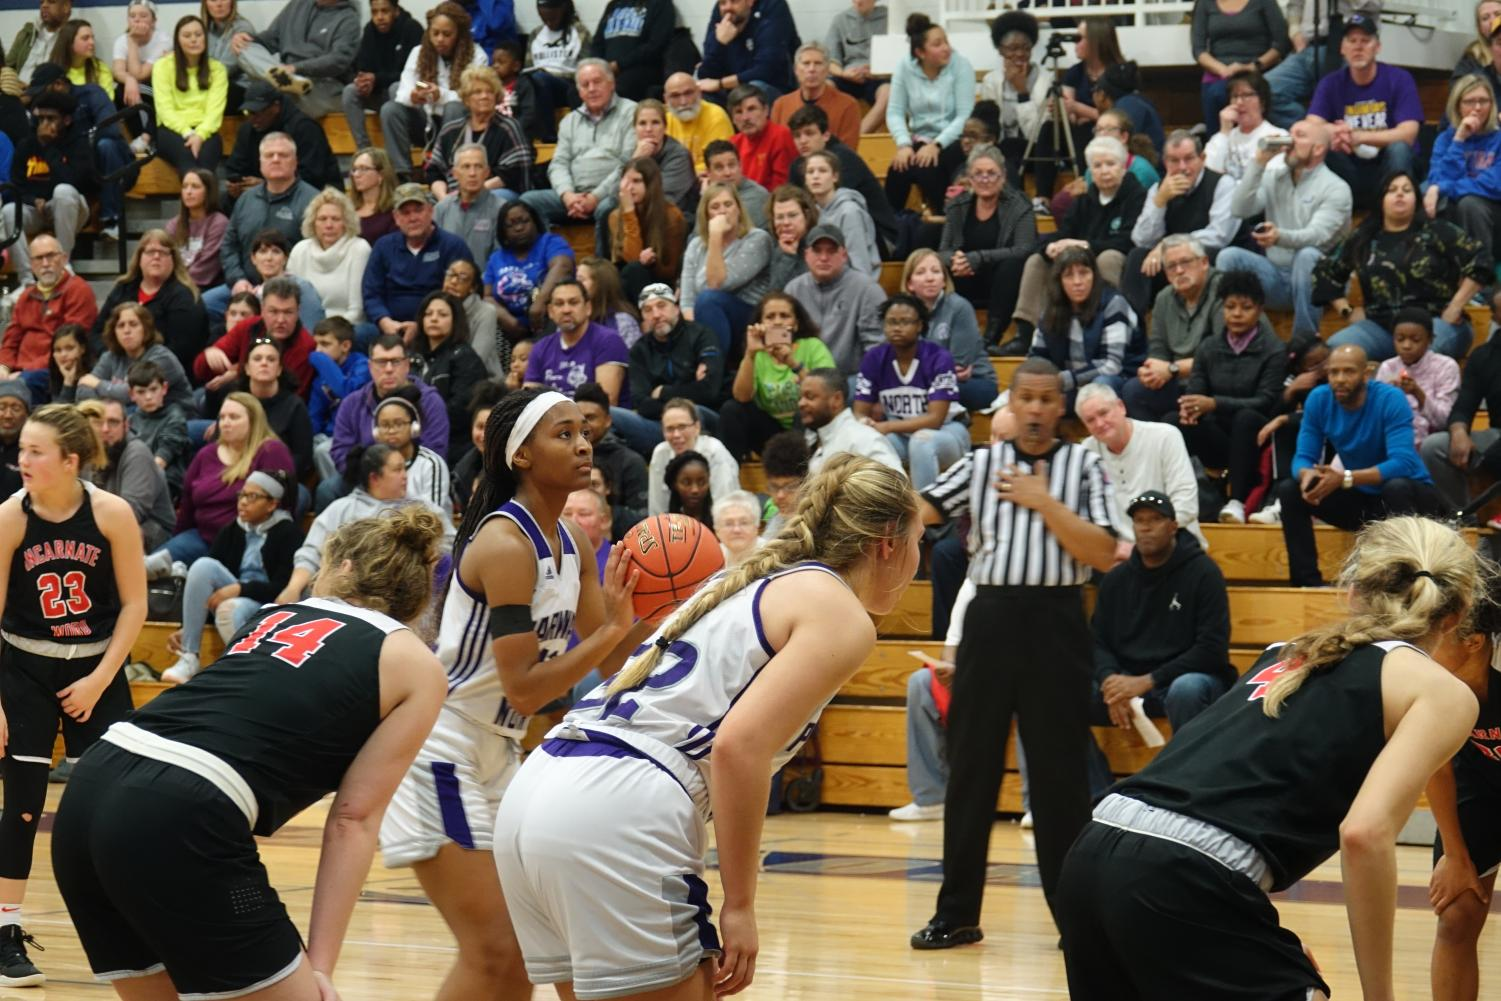 """In the fourth quarter, Davis gears up to make a free throw after a foul by the Red Knights. """"[It was a great how we] came back in the fourth quarter after being down by so much,"""" said Rhodes."""